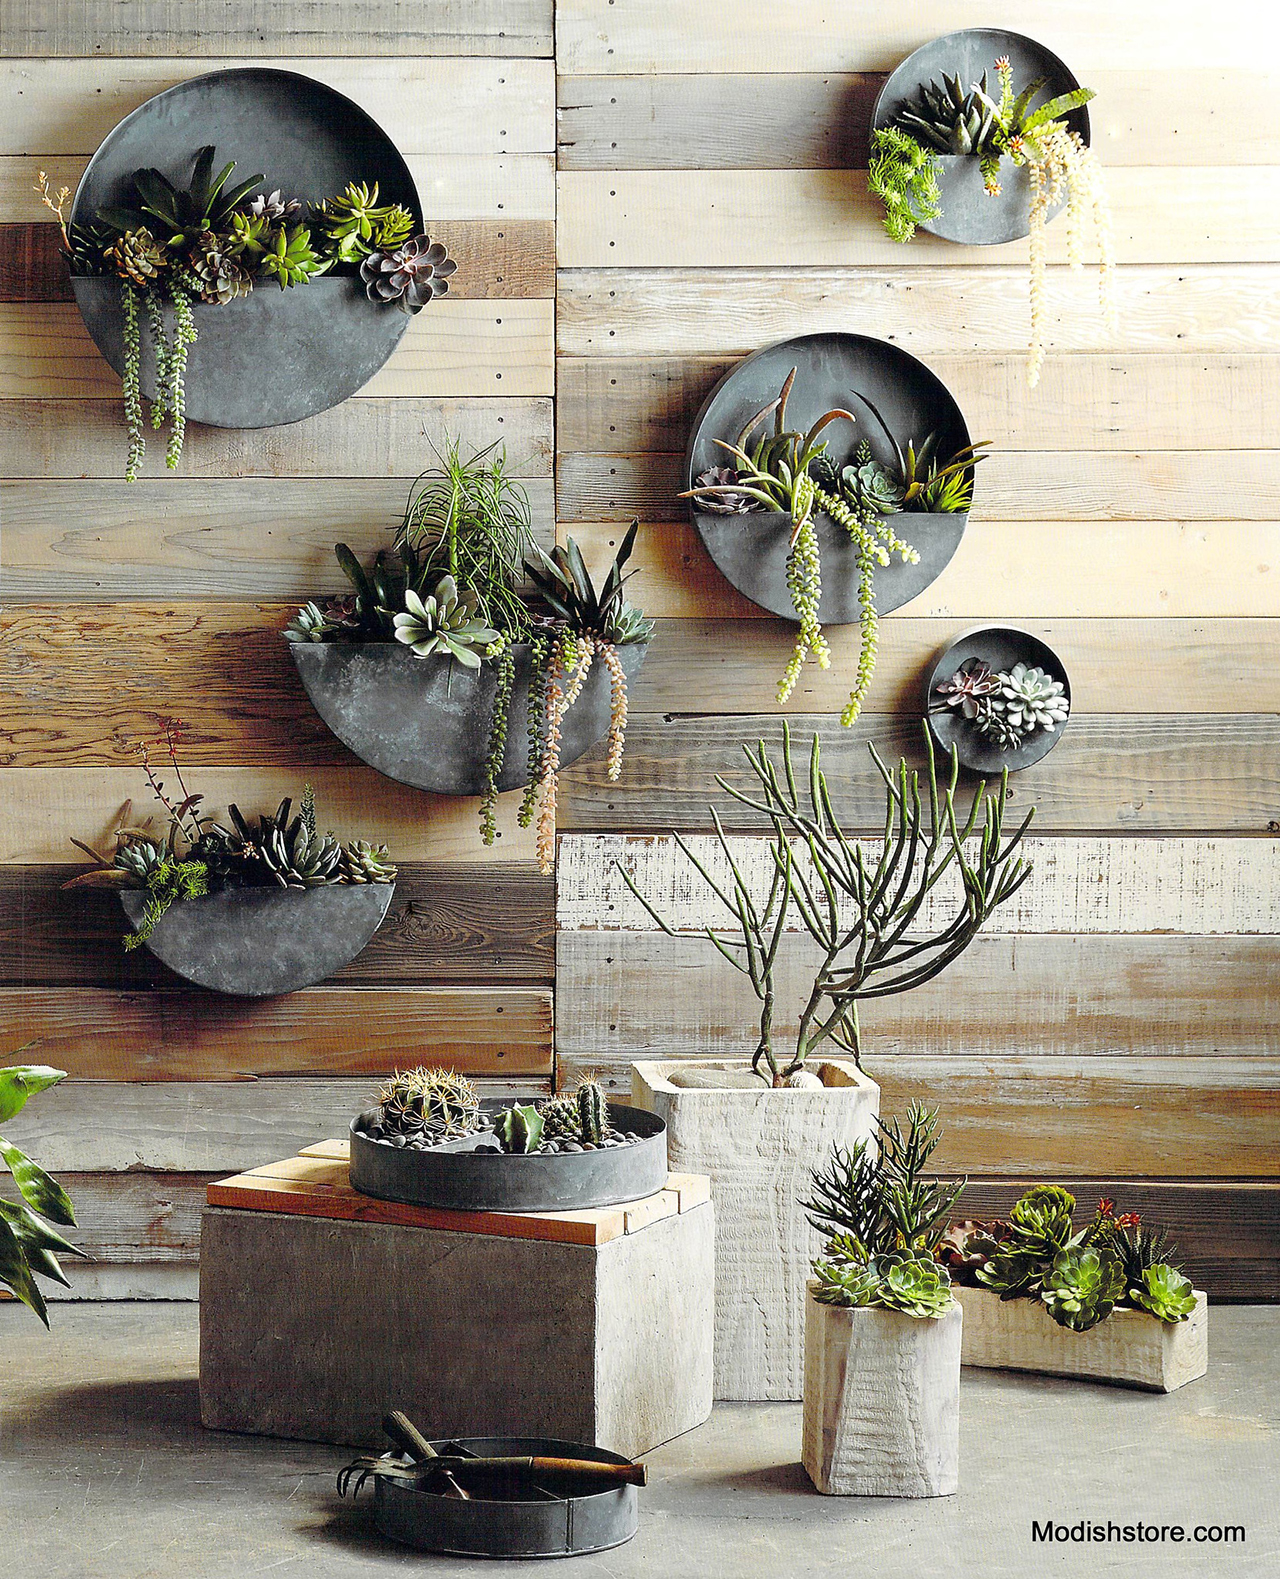 25-muted-round-zinc-planters-allow-plants-to-shine-vertical-gardens-homebnc